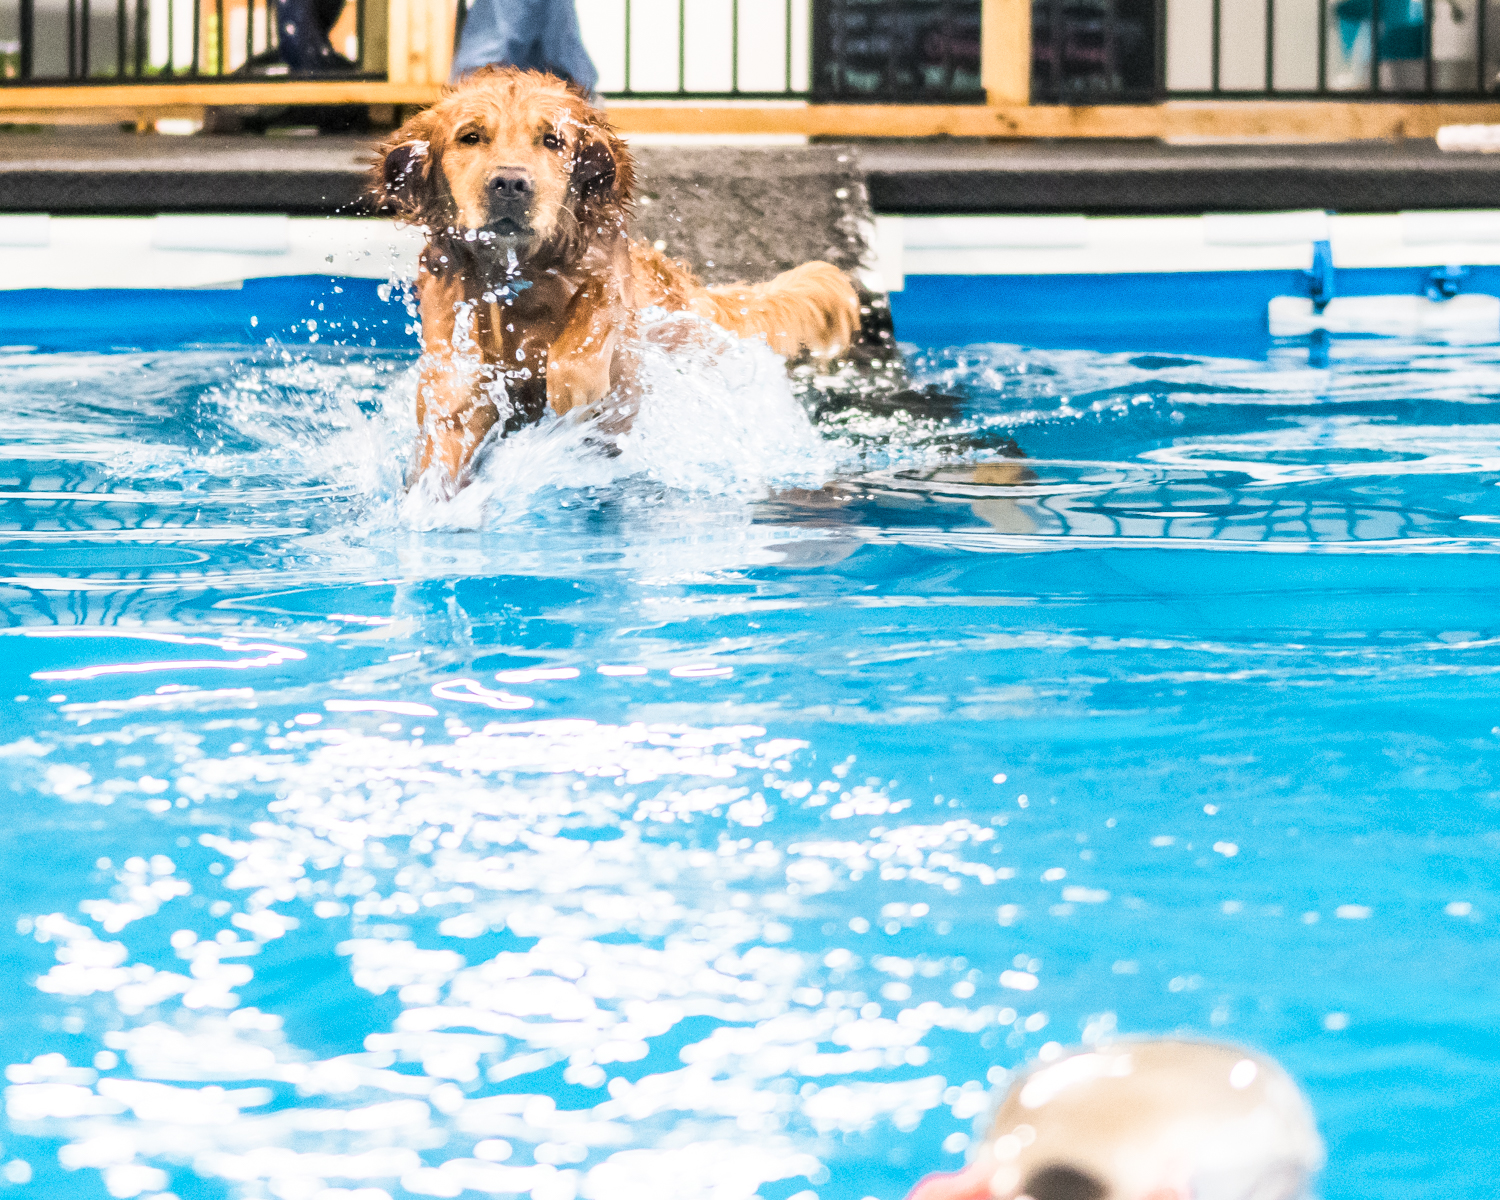 Gunner the golden retriever leaps into the water after his training duck as he and his owners, Ken and Pat Snyder, Gurnee, train him in hunting retrieval techniques while burning energy through swim exercise at Club Aqua Paws on Lathrop Ave in Downtown Racine.